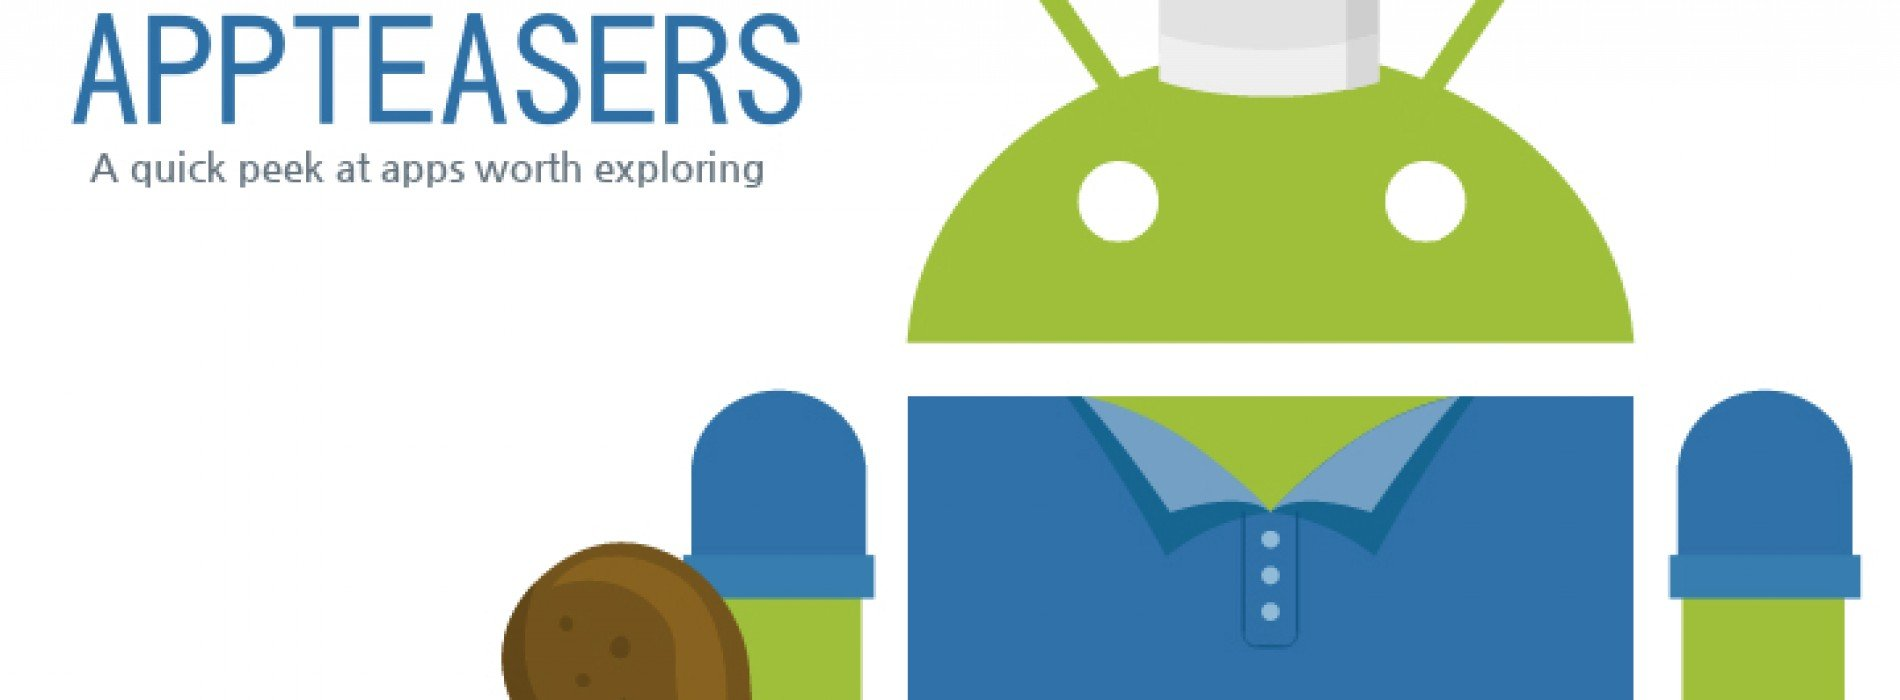 APPTEASERS: 15 great Android apps and games you should know about (October 17)